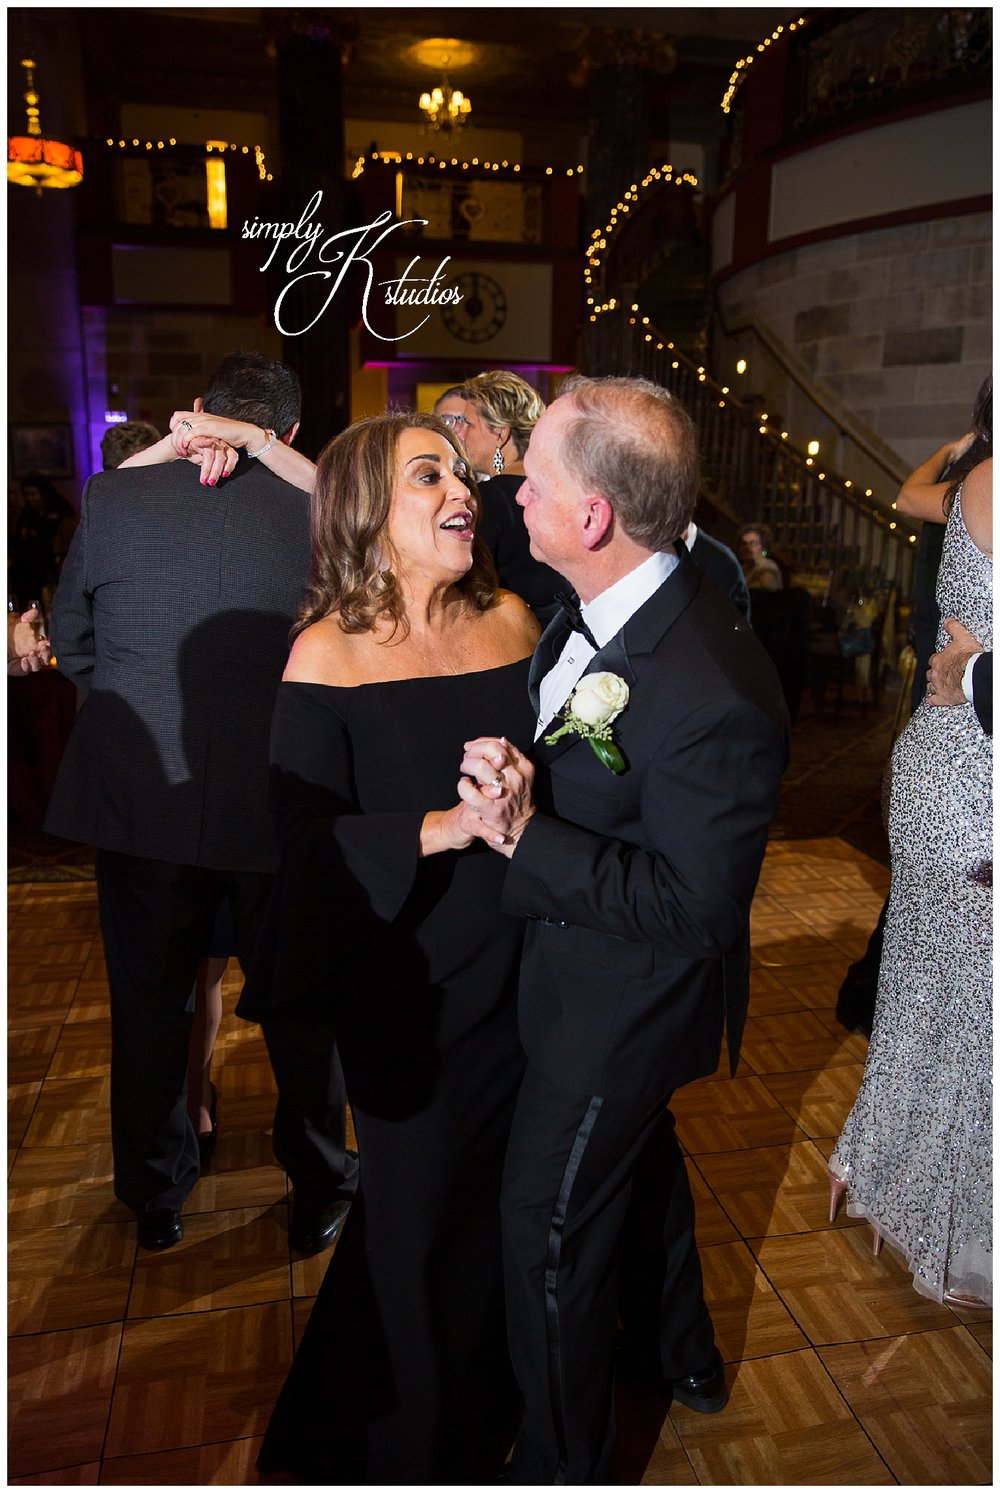 106 Connecticut Wedding Photographers Simply K Studios.jpg